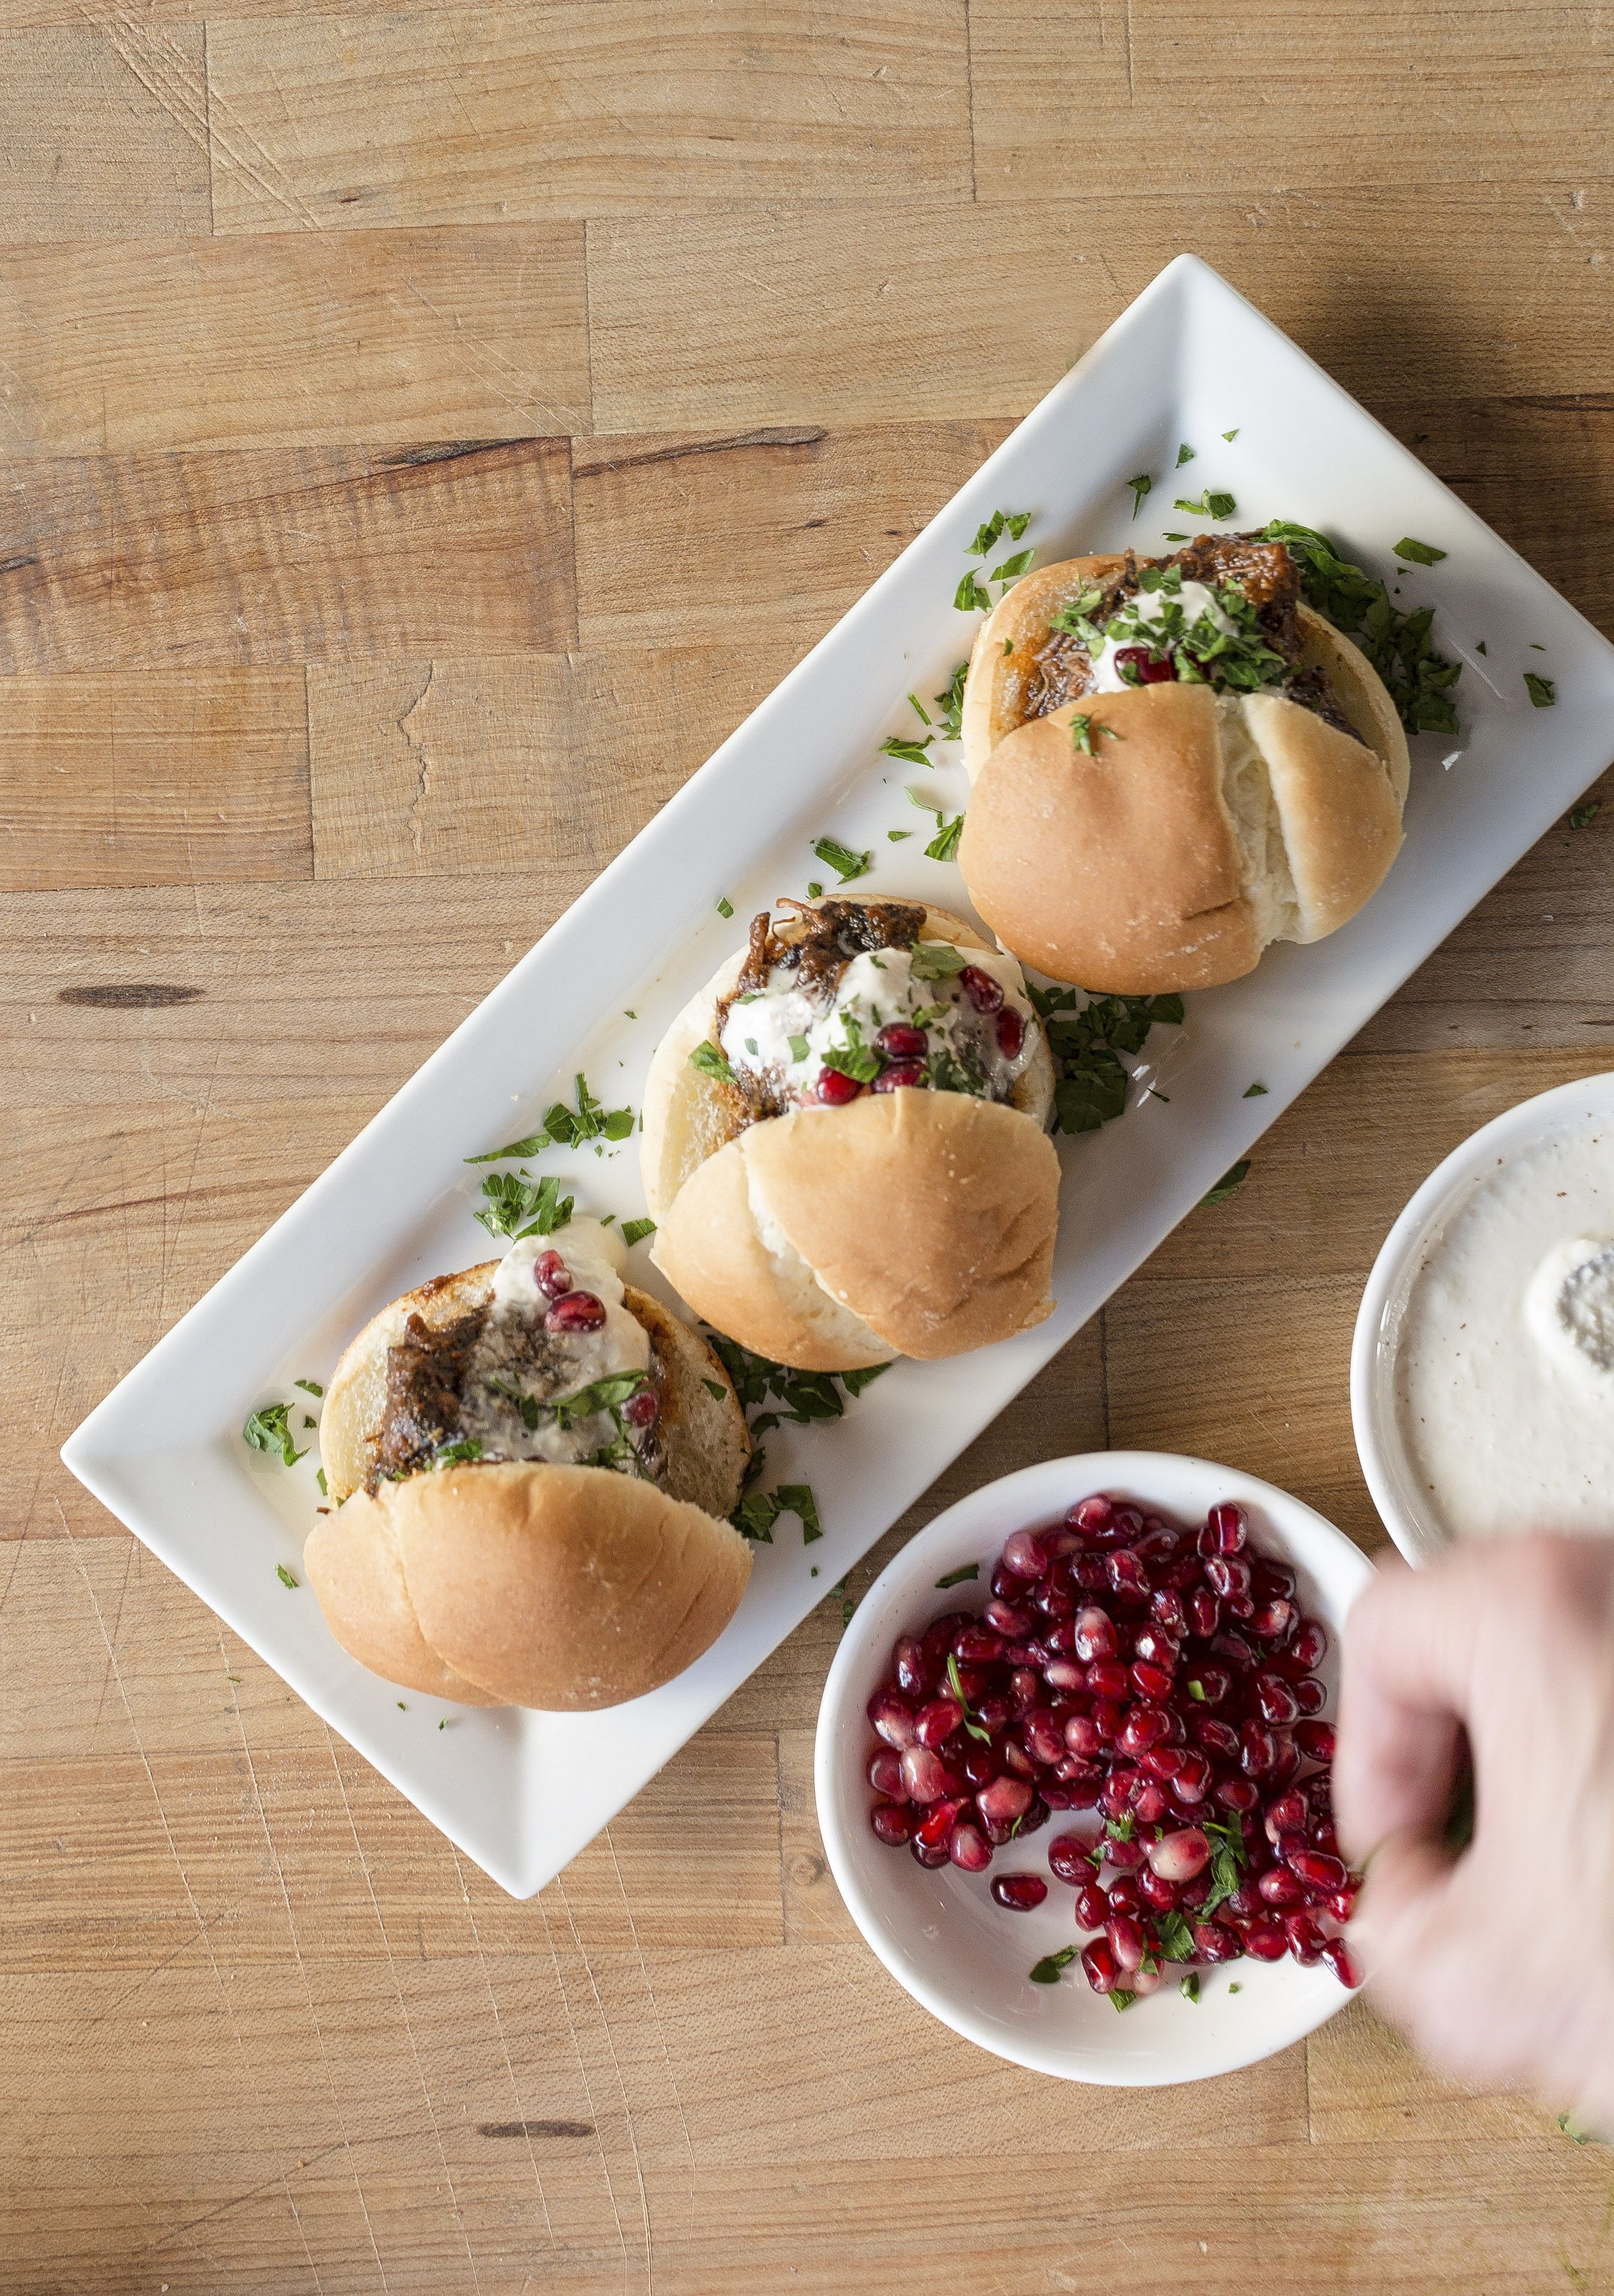 How much does wedding catering cost? Super bowl food